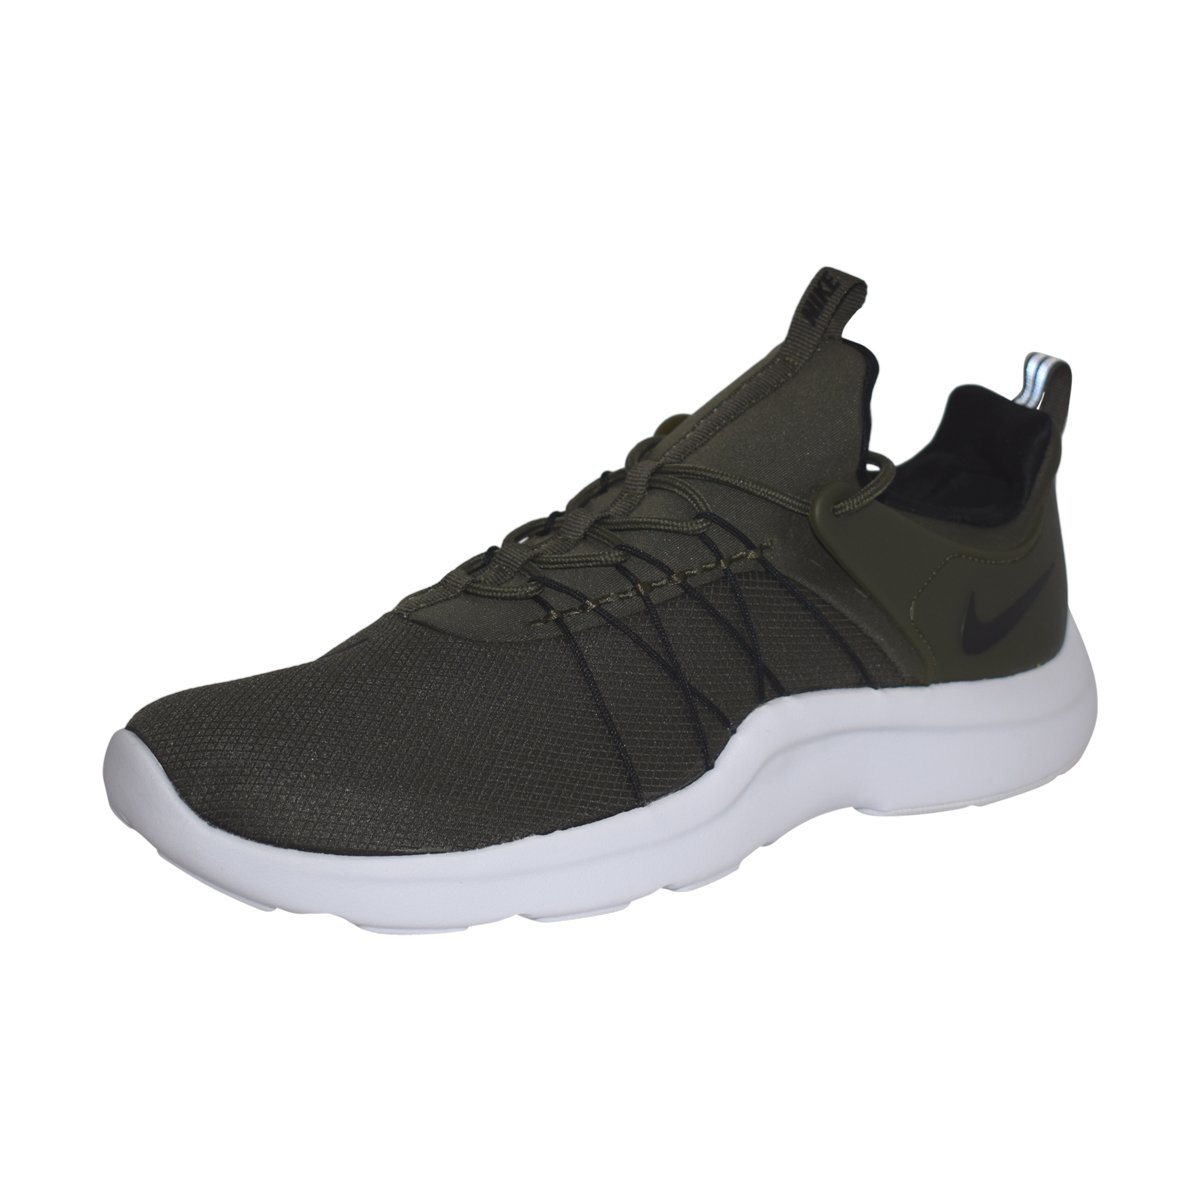 NIKE Men's Darwin Casual Shoes Lightweight Comfort Athletic Running Sneaker B07D5LTC62 11.5 M US|Cargo Khaki / Black-white